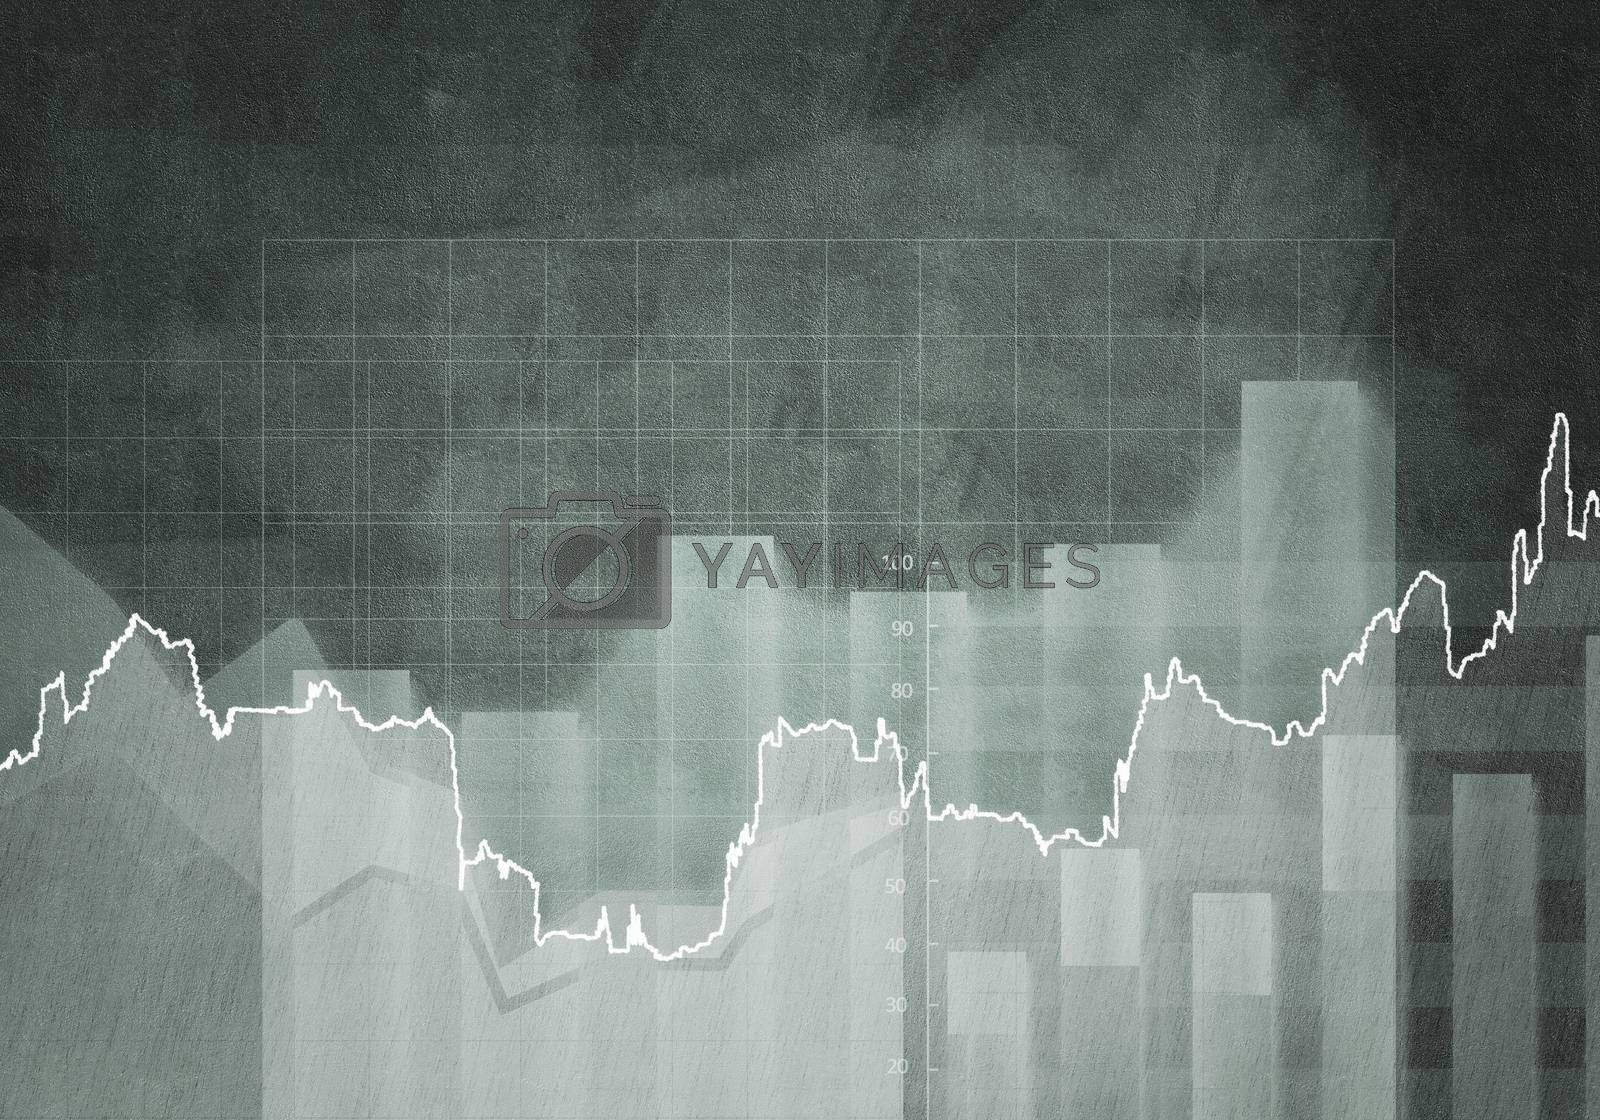 Background conceptual image with market graphs and diagrams